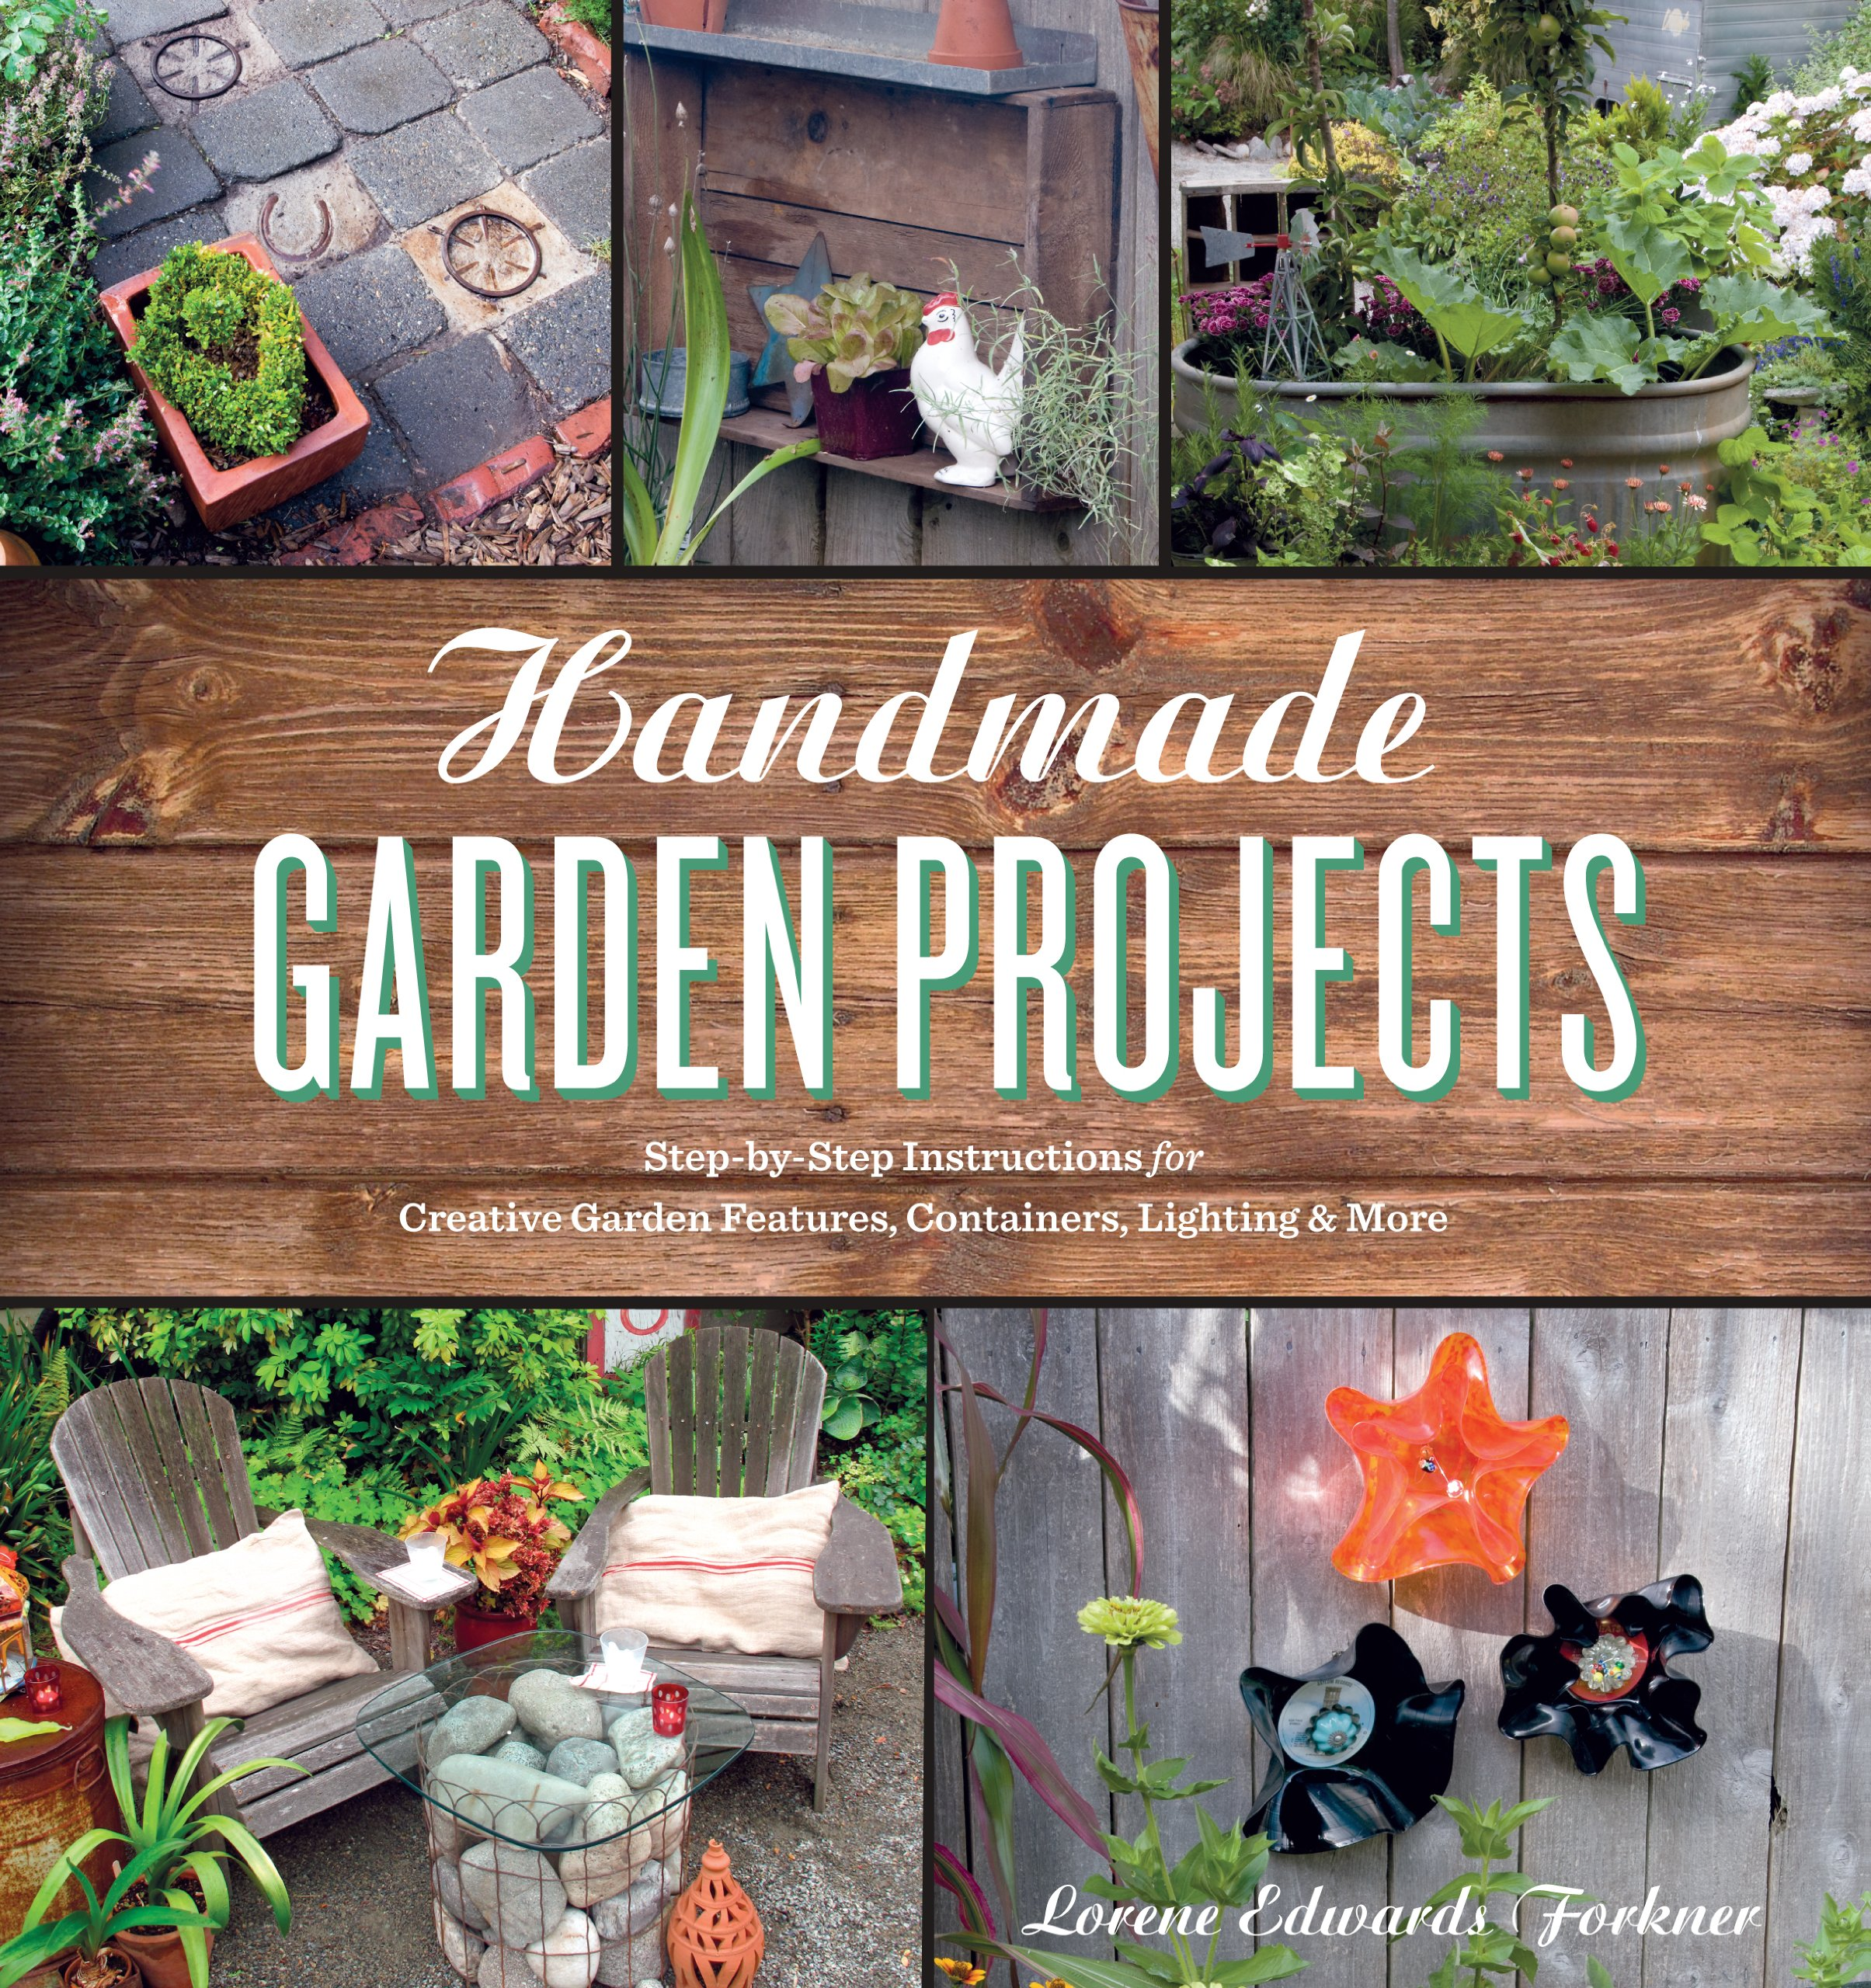 Marvelous Handmade Garden Projects: Step By Step Instructions For Creative Garden  Features, Containers, Lighting And More: Lorene Edwards Forkner:  9781604691856: ...